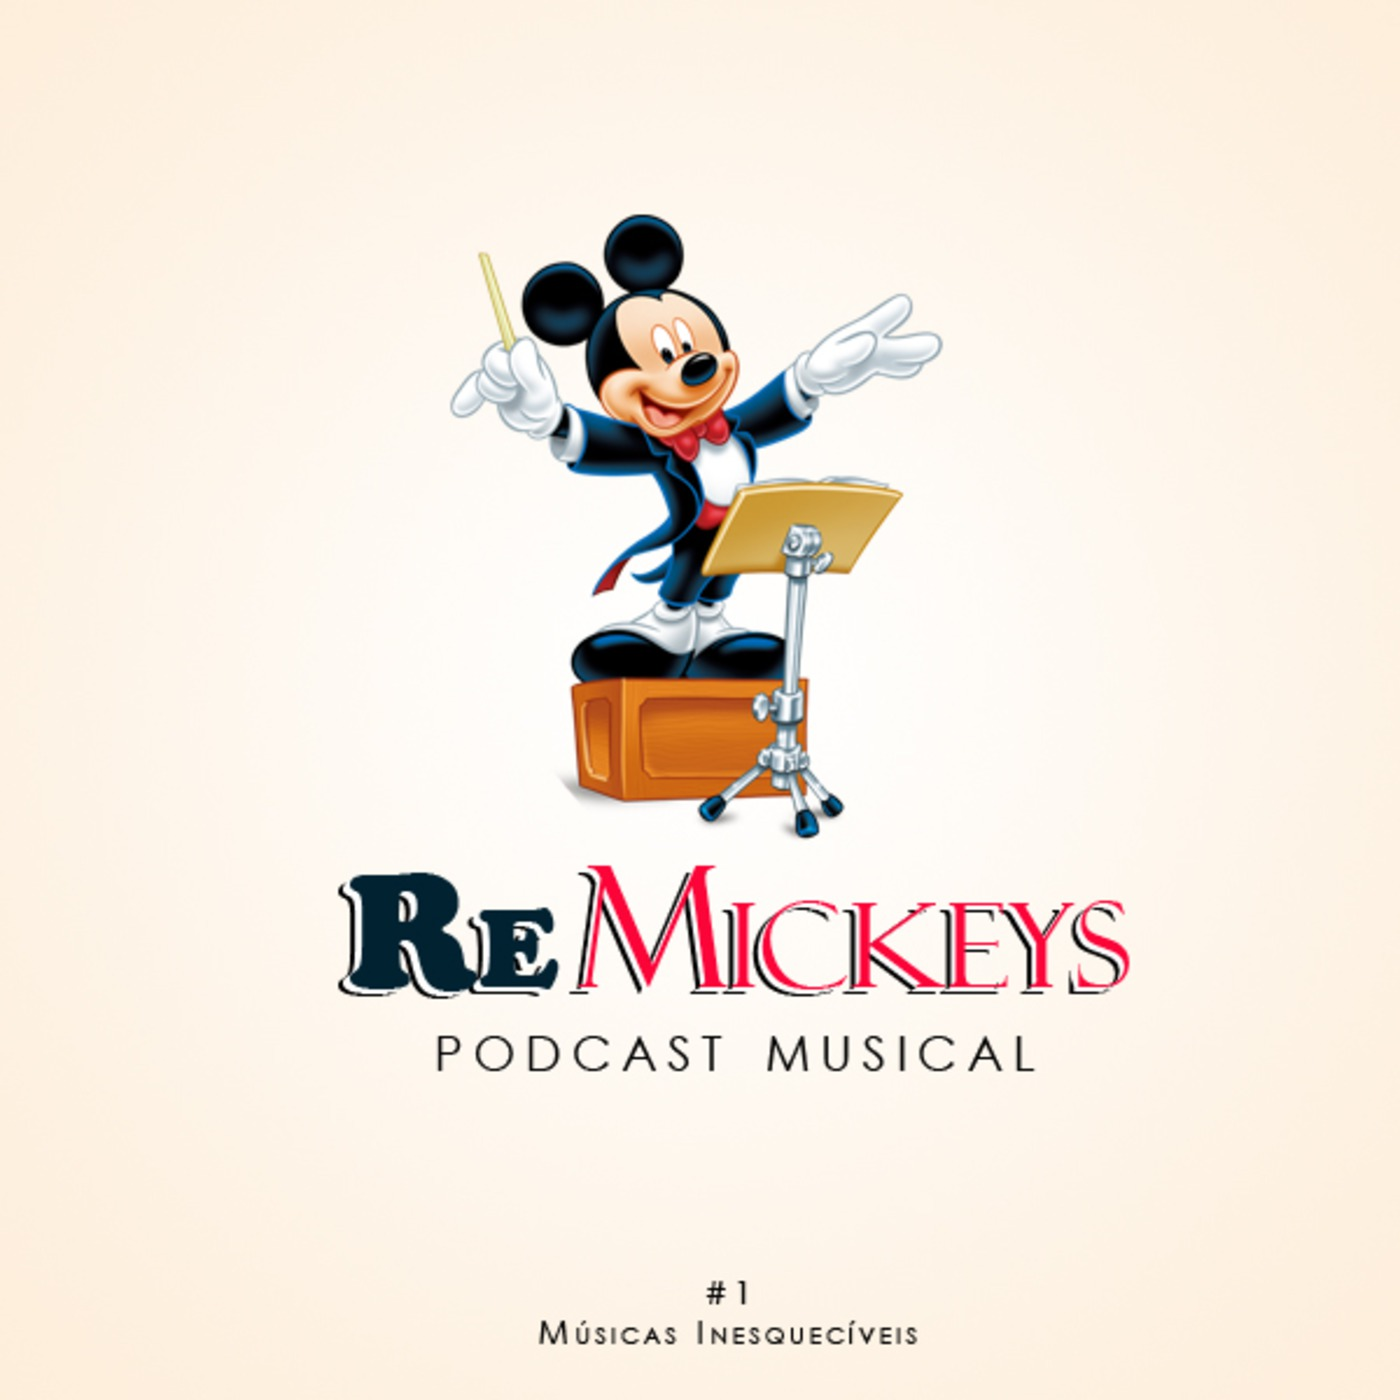 ReMickeys